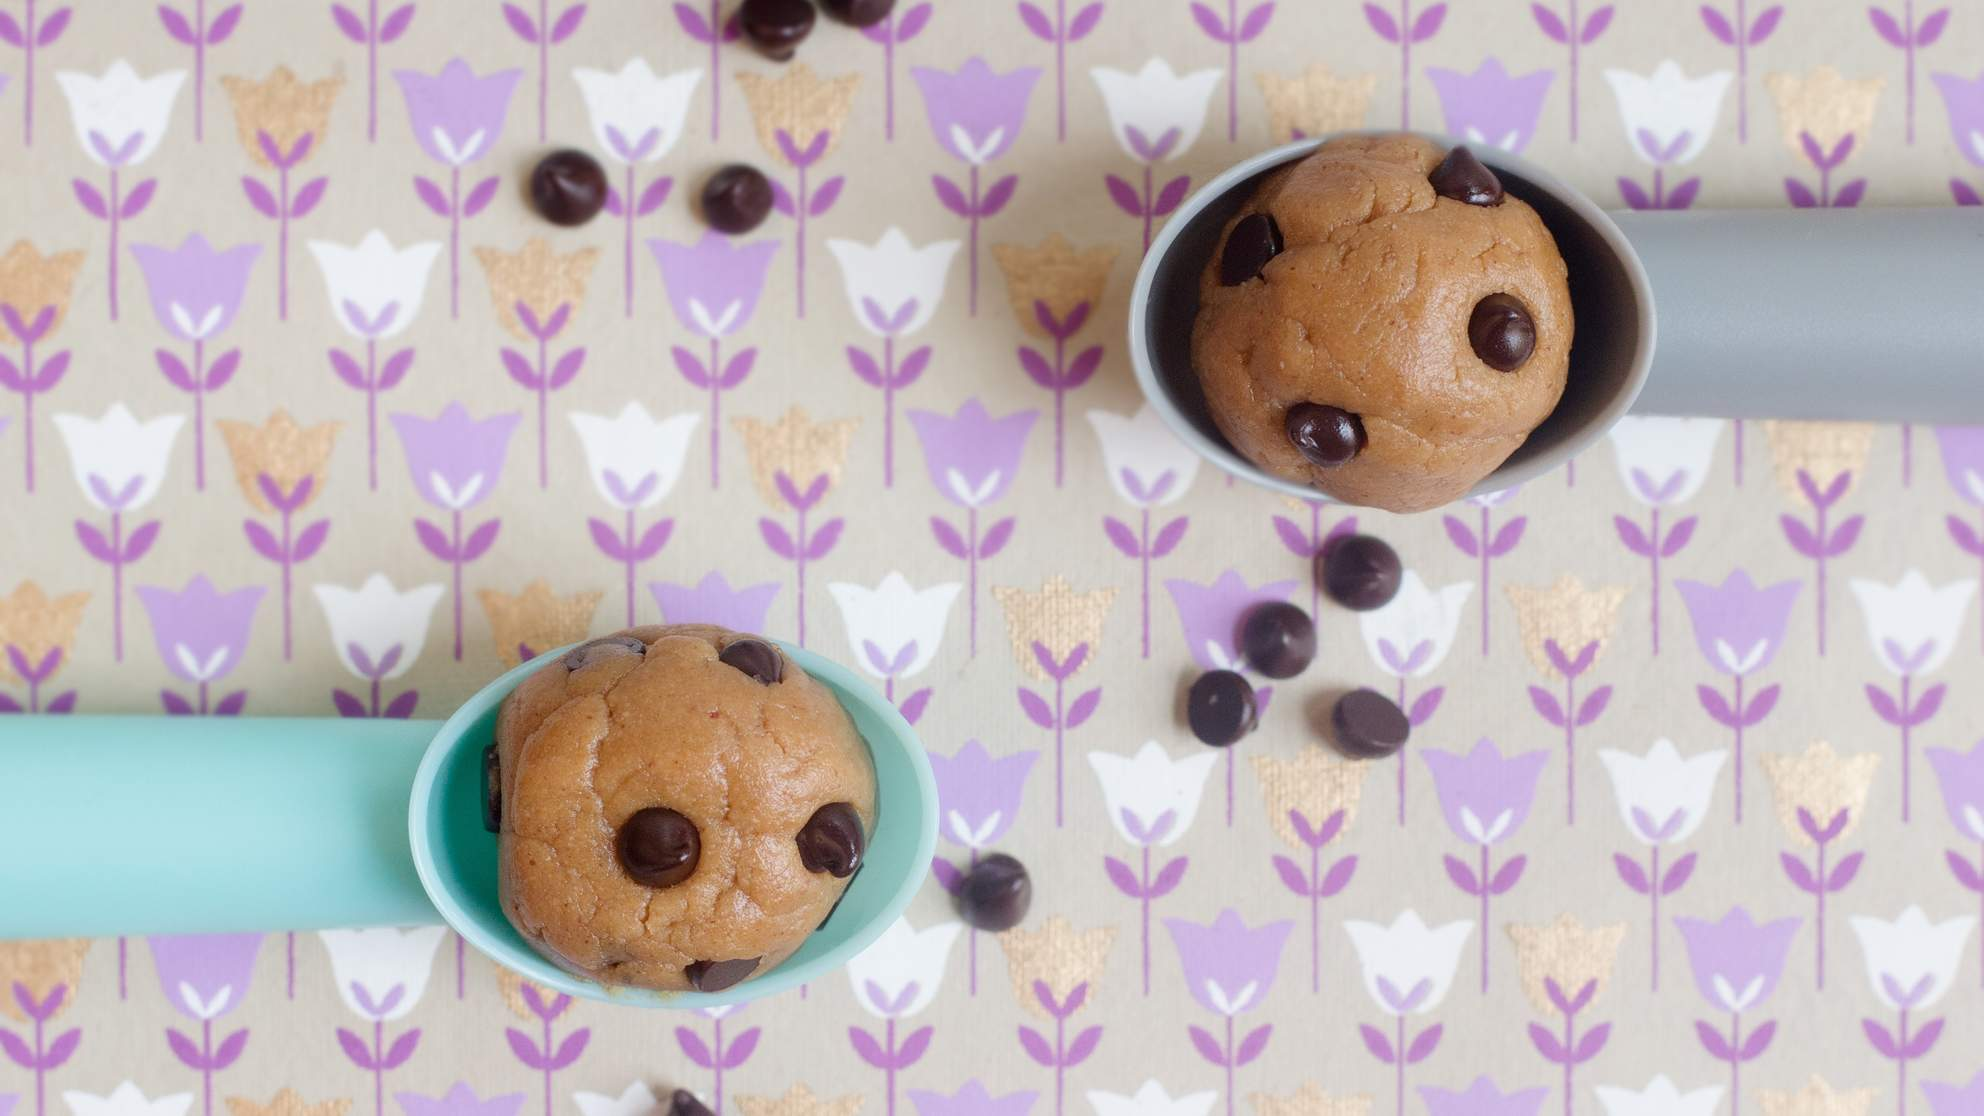 Cookie Dough Contraband recipe from Eat Your Feelings